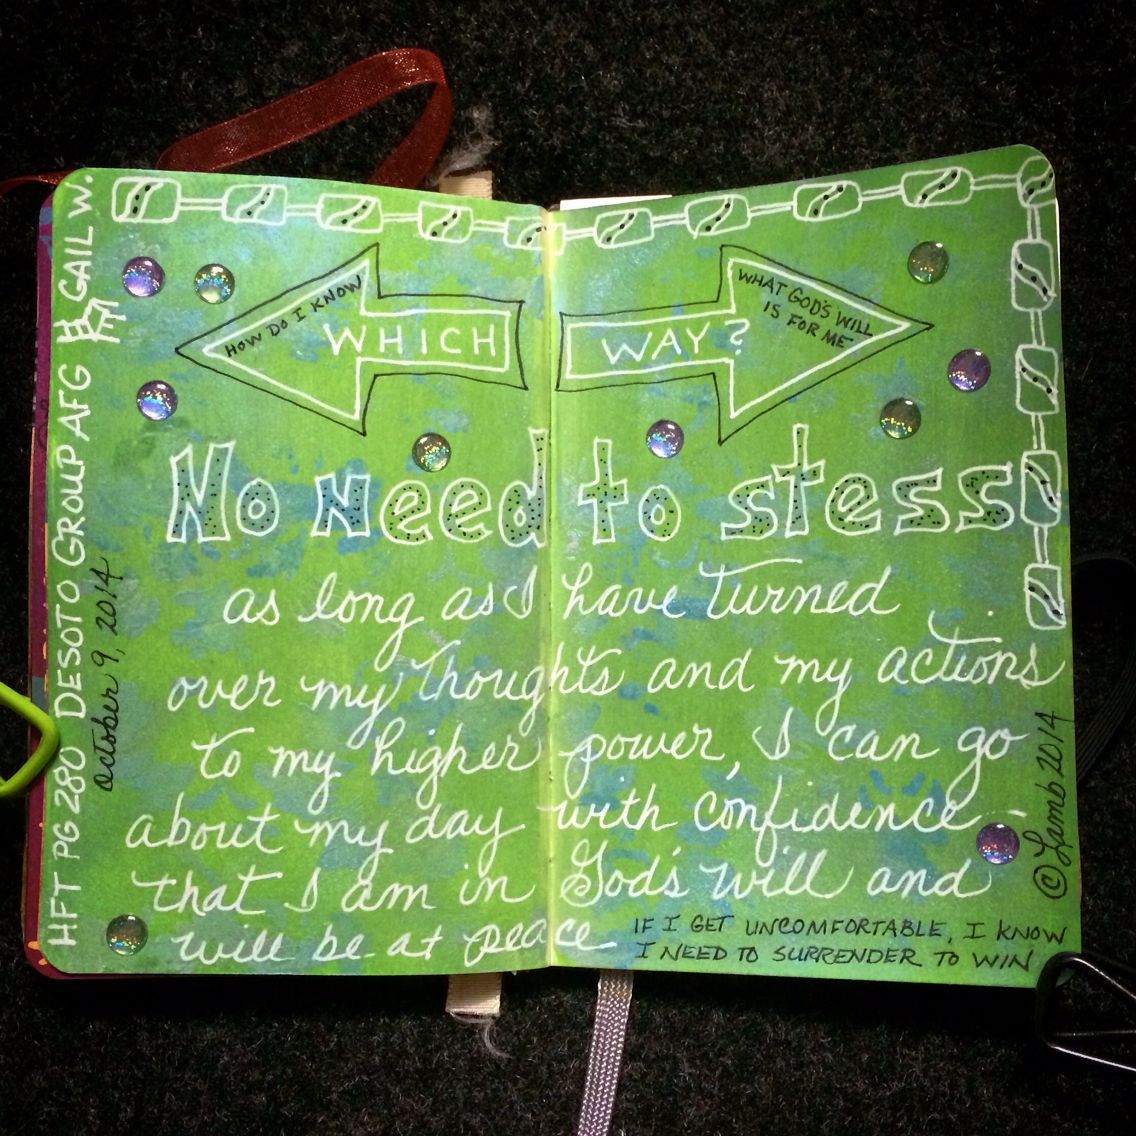 Don't freak out over the fork in the road if you've turned over your will and your life to God. #surrendertowin #ArtJournaling #ArtJournal #MyArtJournal #moleskine #mixedmedia #meetingtopics #TheresaLamb ©Theresa Lamb 2014